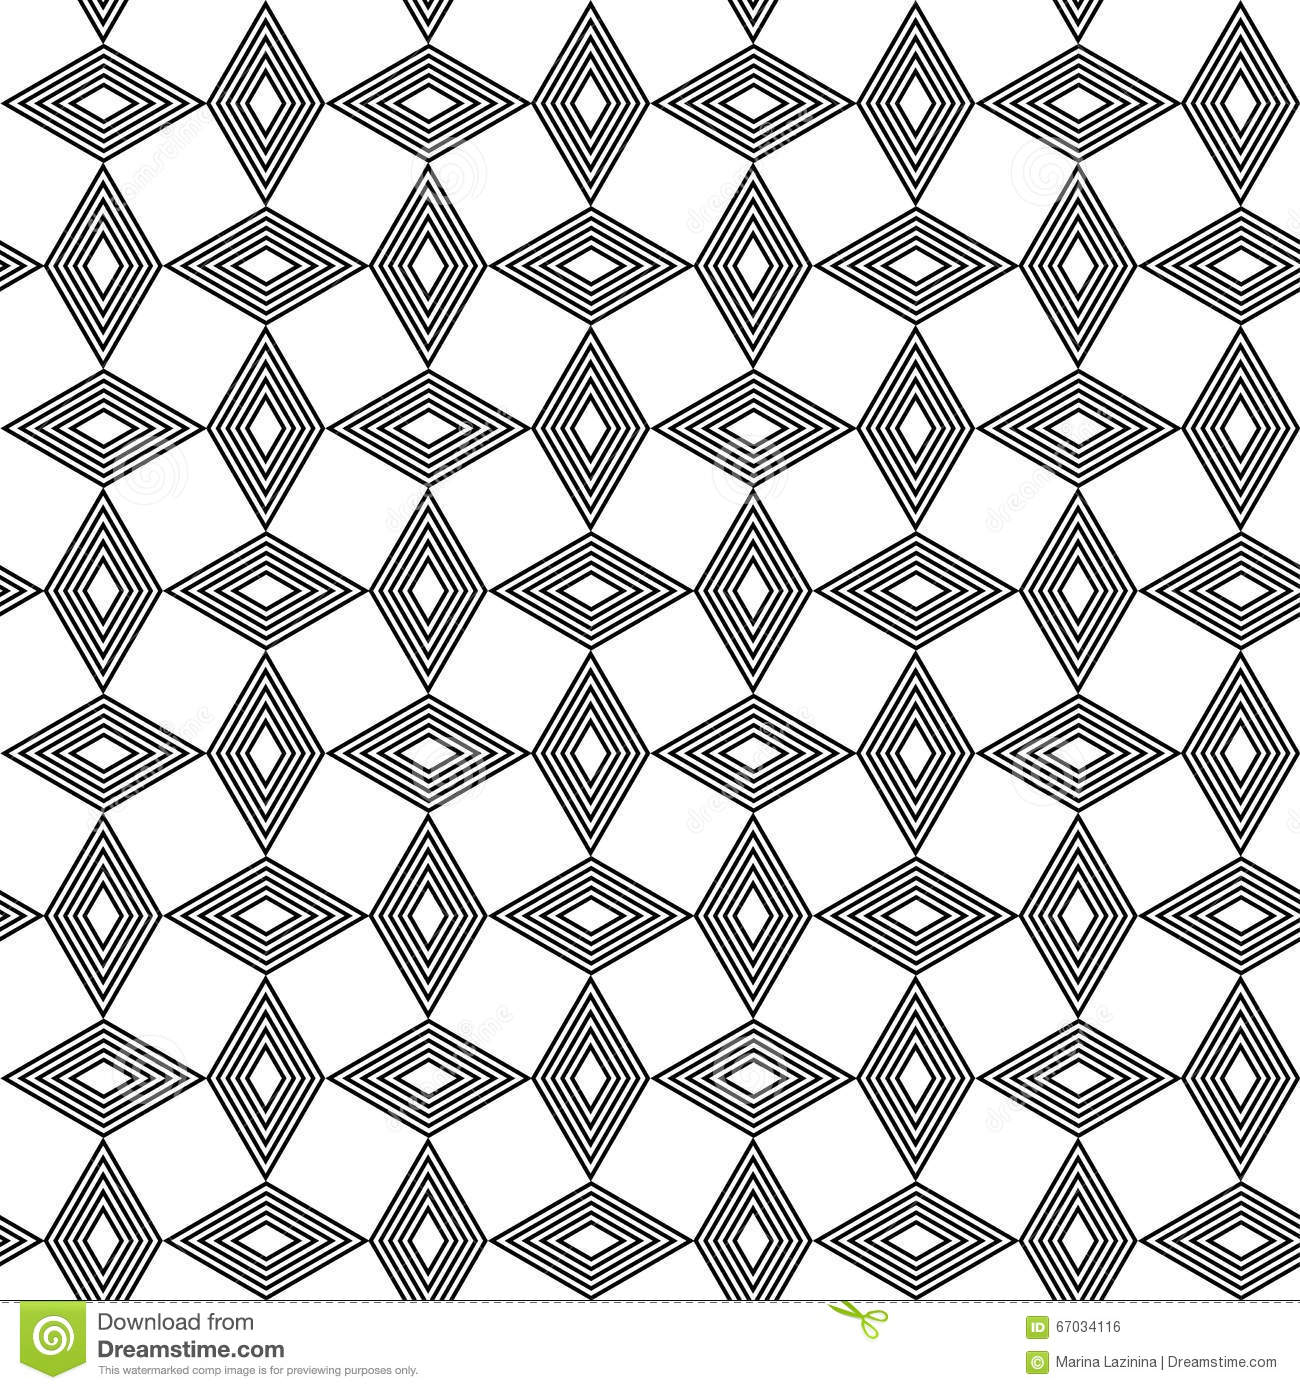 Seamless Black And White Background With Abstract Geometric Shapes ... for Geometric Shapes Design Black And White  61obs